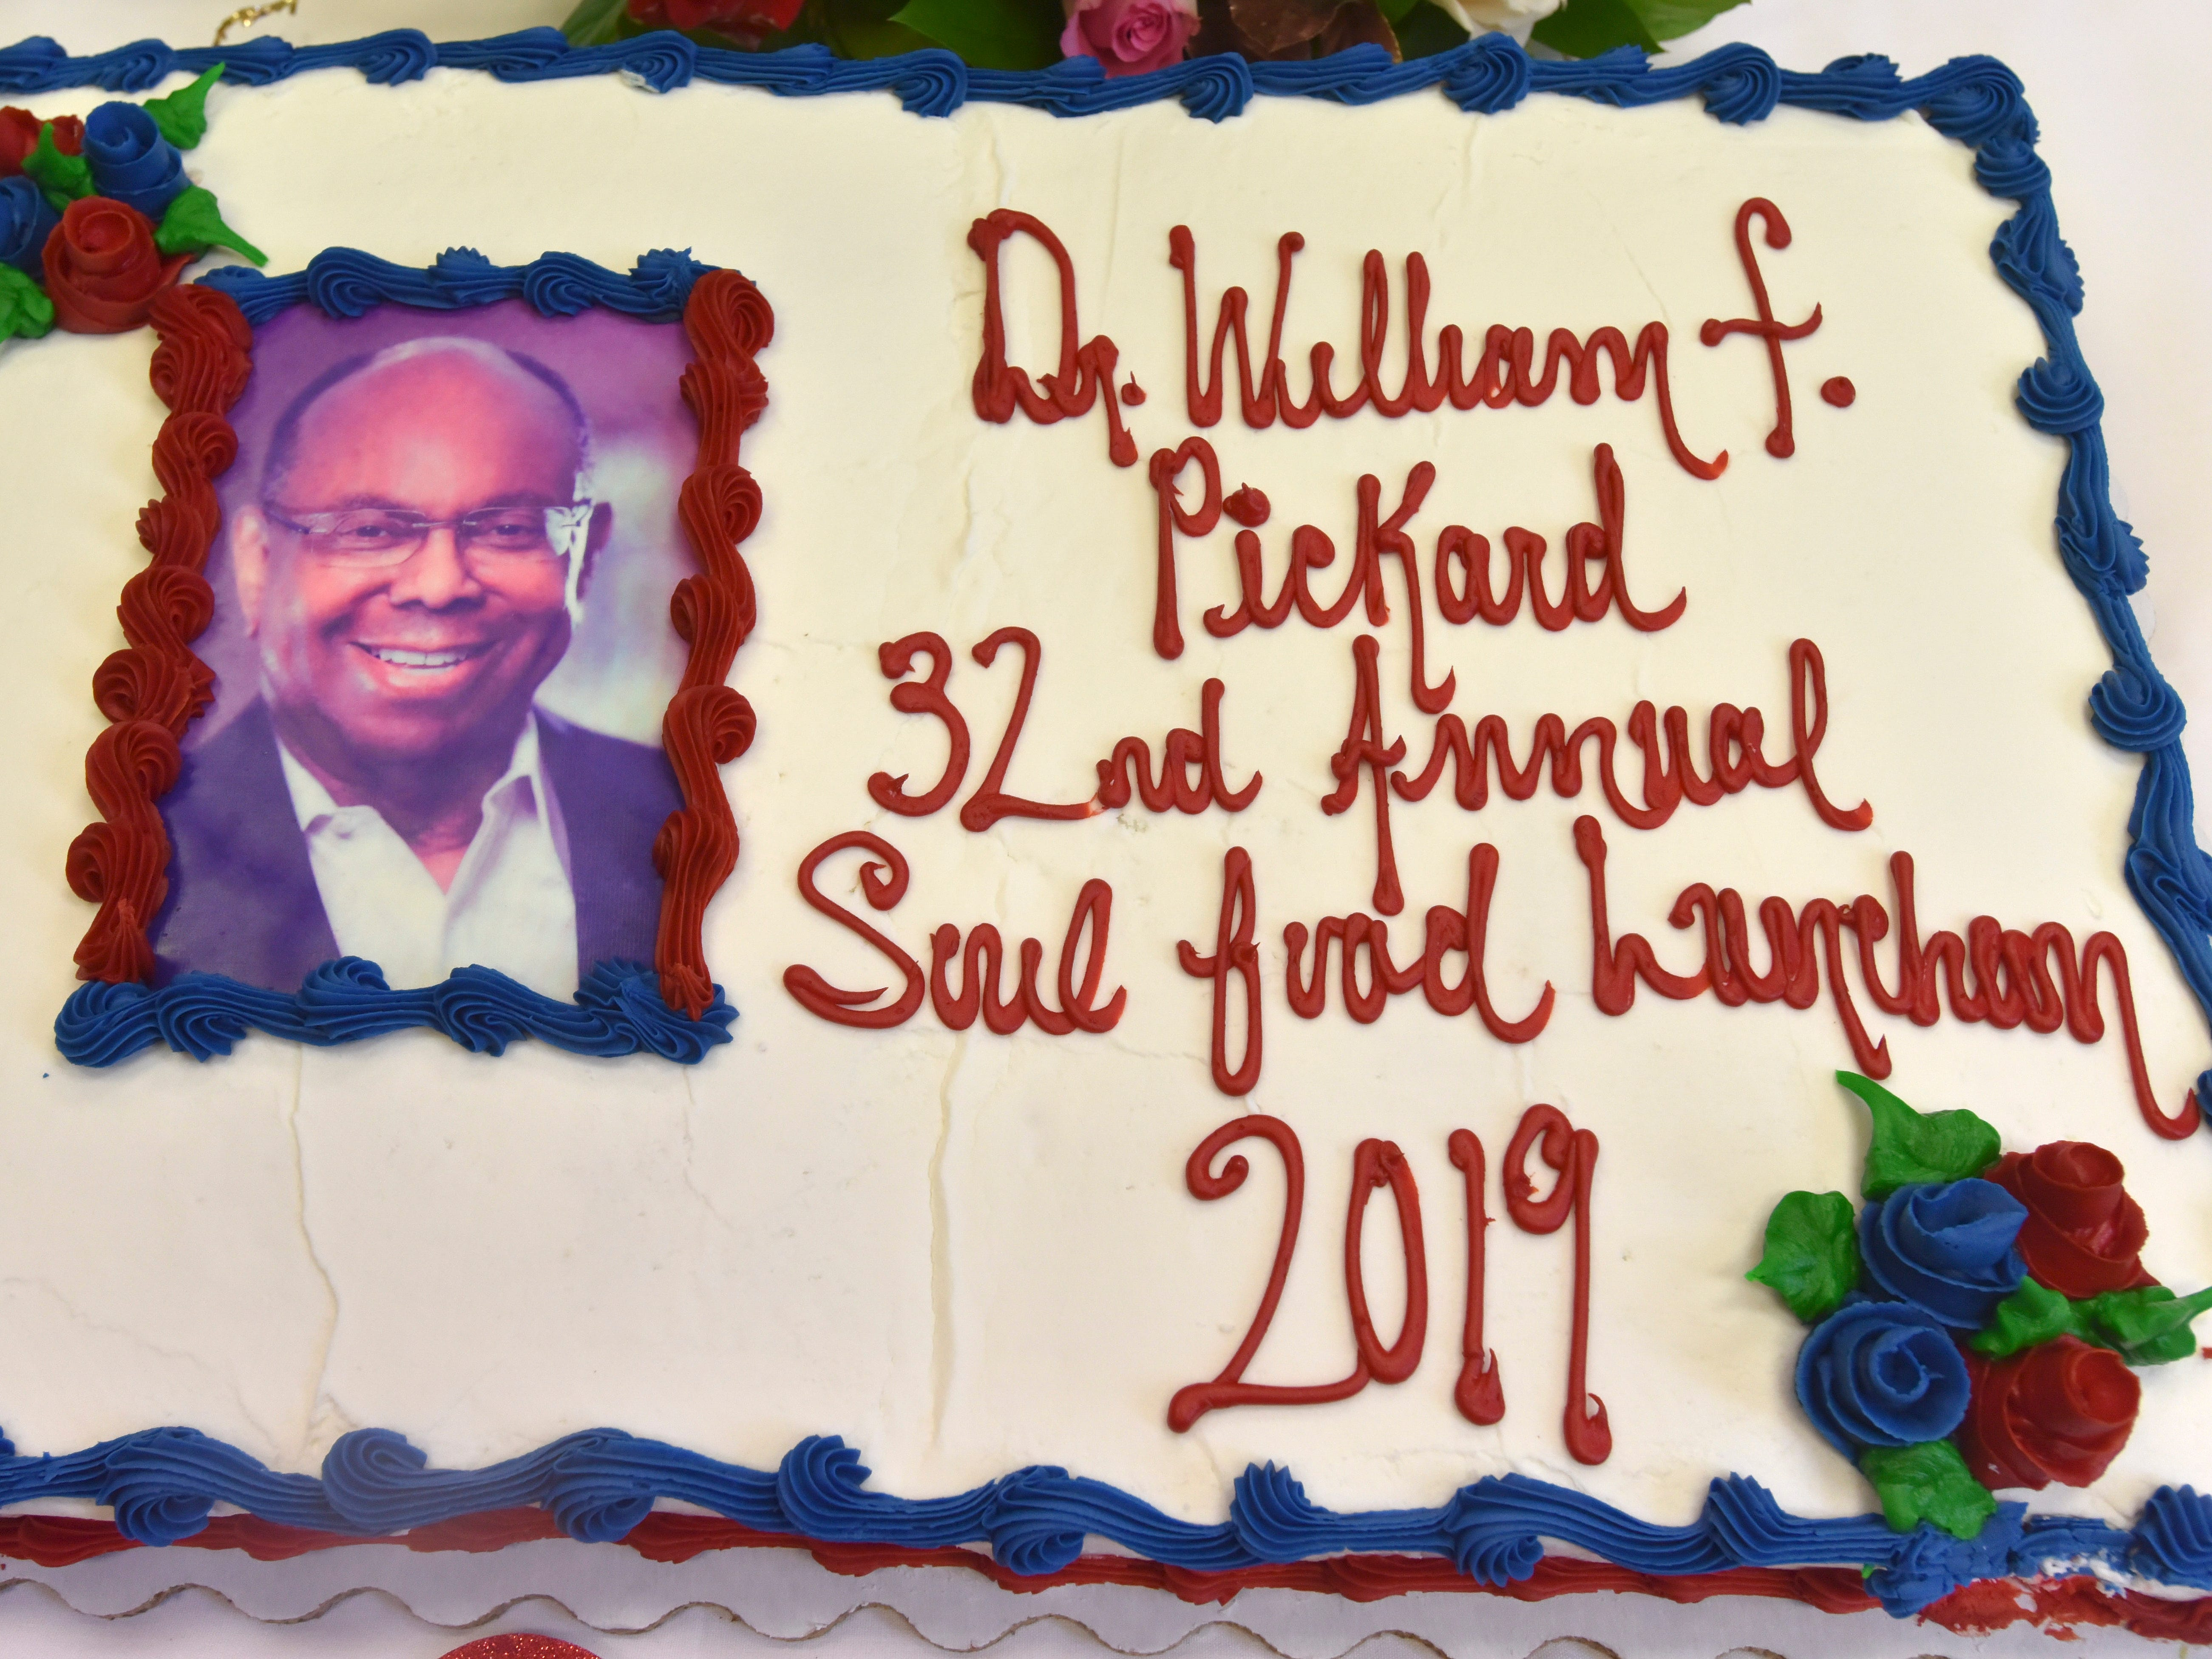 A portrait of William F. Pickard, Soul and Spirit Humanitarian Award honoree, adorns a cake in Judge Damon Keith's chambers.